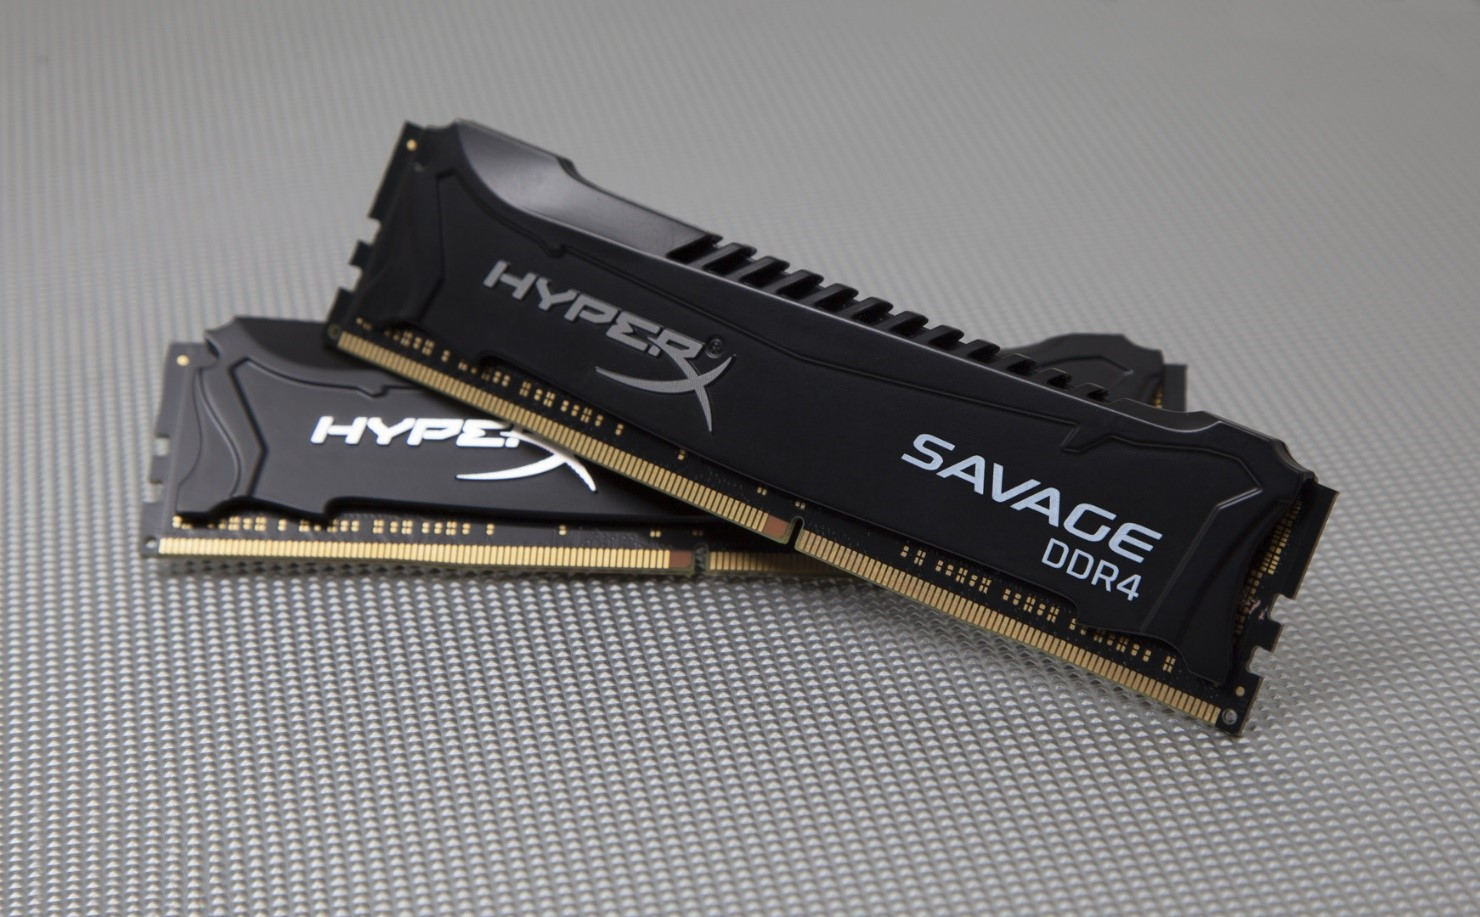 Рис.10. Модули HyperX Savage Black